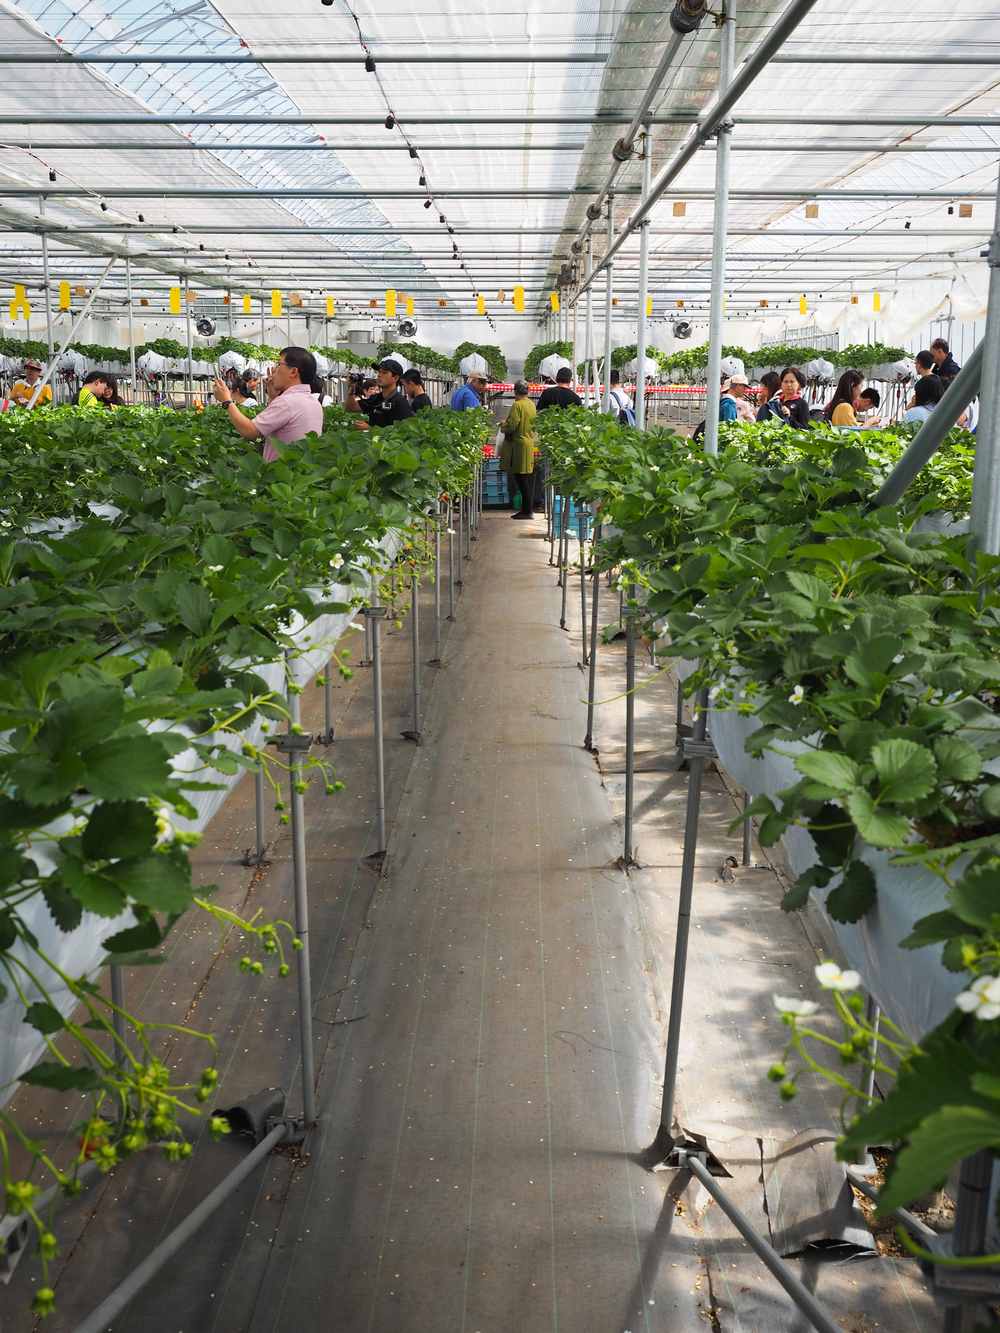 Inside the strawberry greenhouse